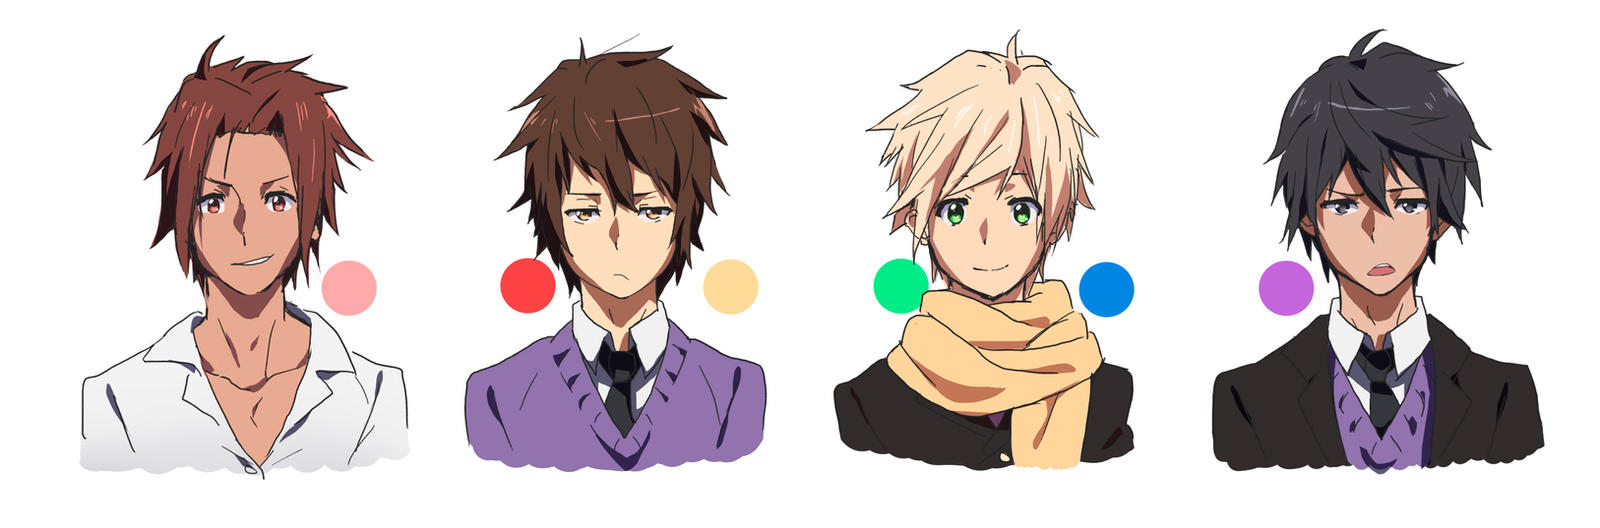 Anime Boy Character Design : Male characters by moxie d on deviantart